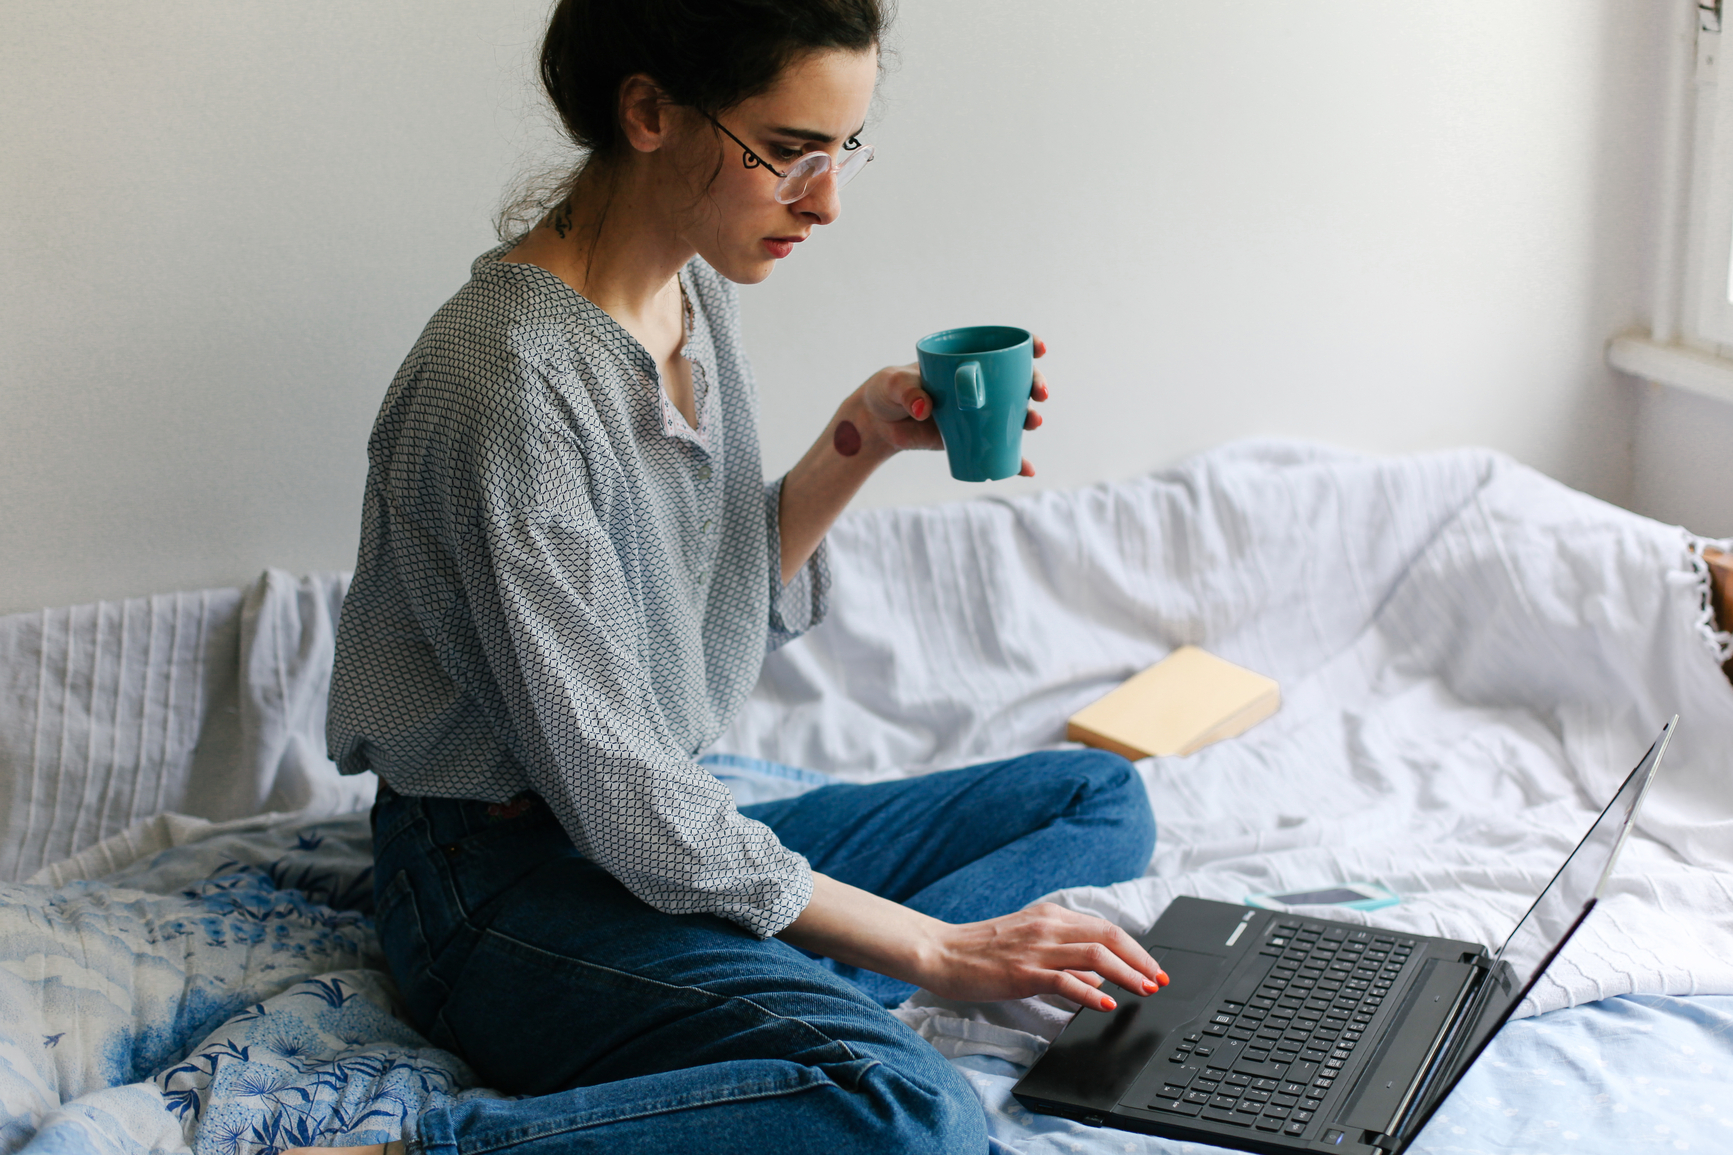 Woman drinking coffee on the bed, using her laptop